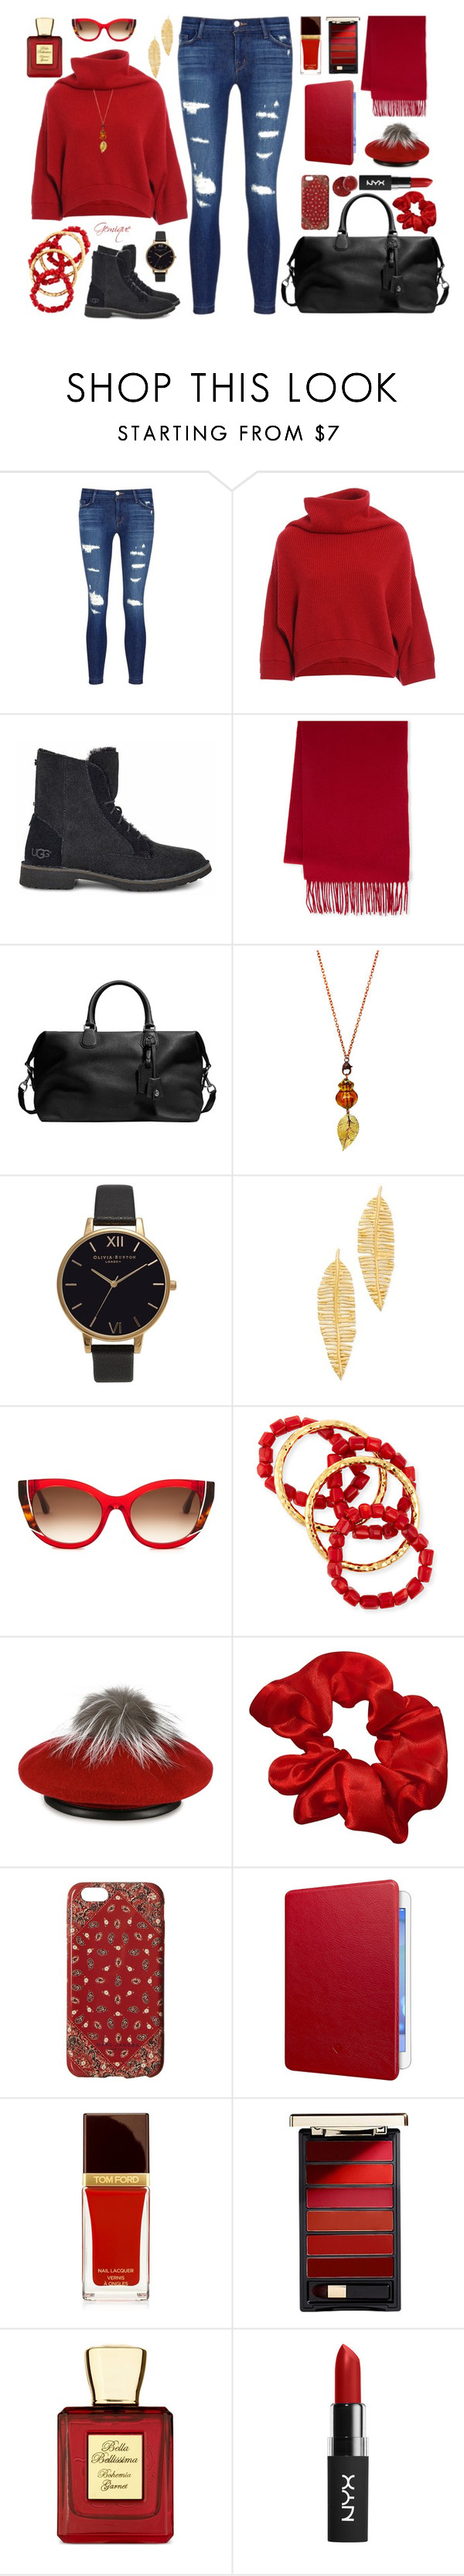 """""""Weekending It!"""" by gemique ❤ liked on Polyvore featuring J Brand, Brunello Cucinelli, UGG, Portolano, Coach, Olivia Burton, Kenneth Jay Lane, Thierry Lasry, NEST Jewelry and Eugenia Kim"""